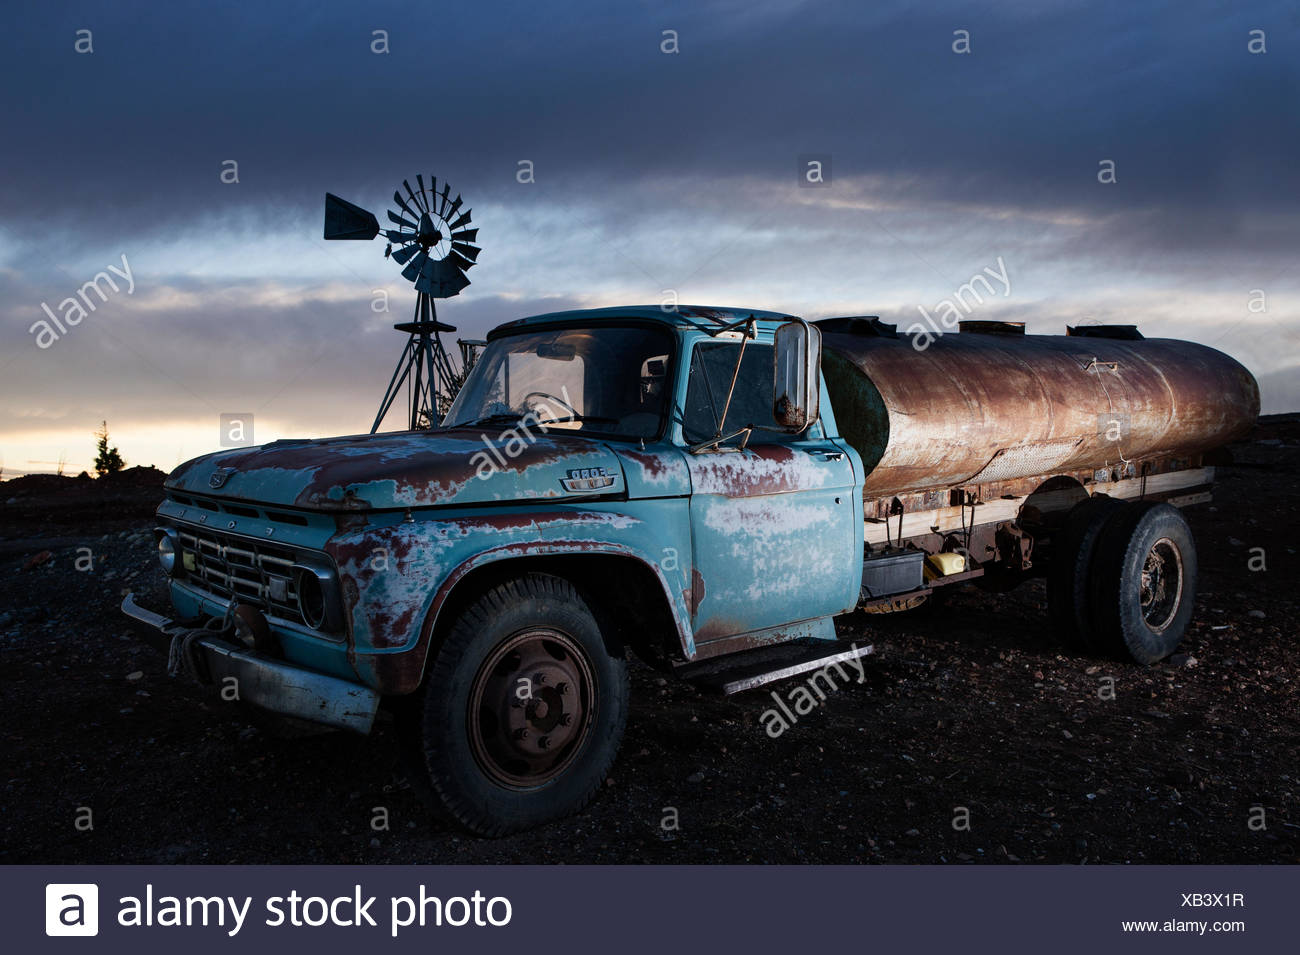 Rusty Old Vehicles Stock Photos & Rusty Old Vehicles Stock Images ...